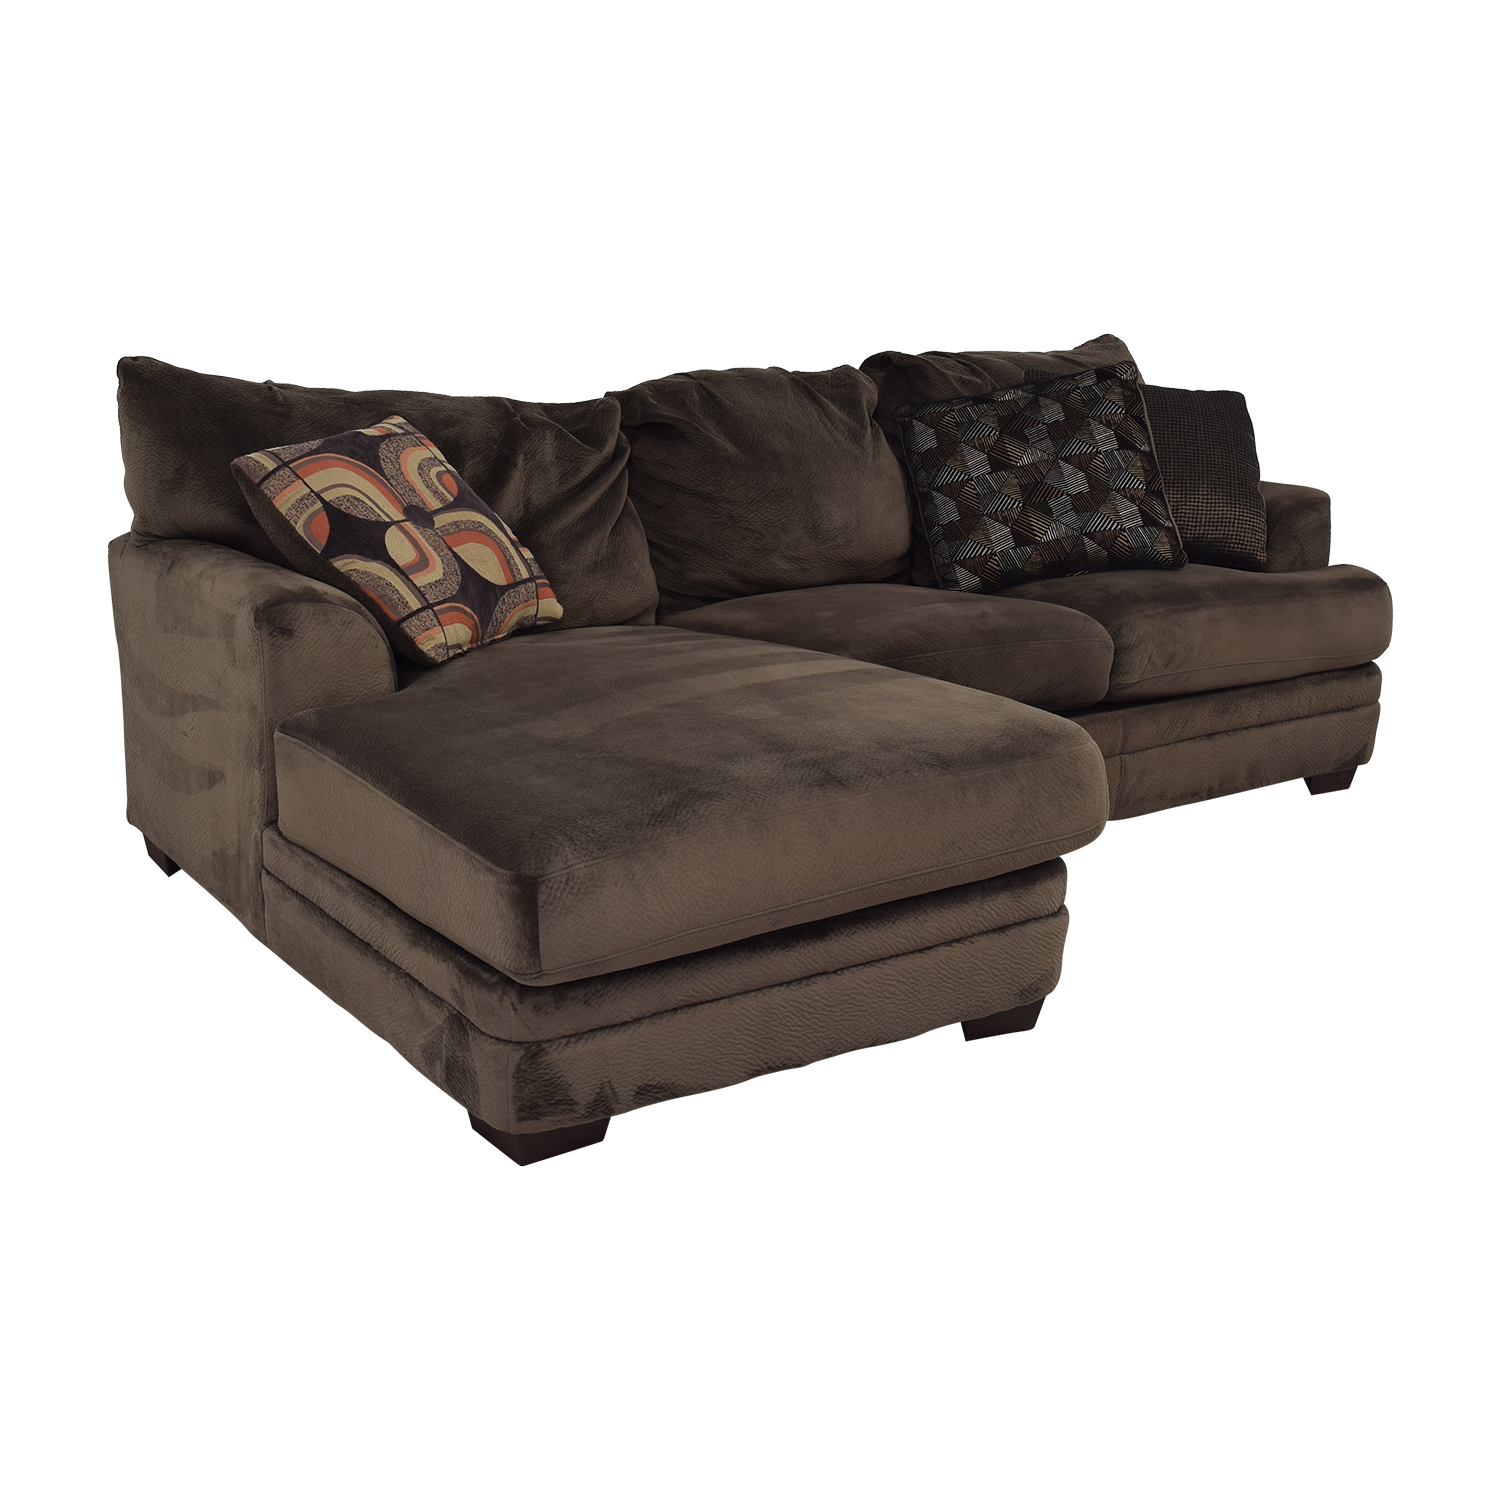 Macy's Macy's Mocha Sectional Couch for sale